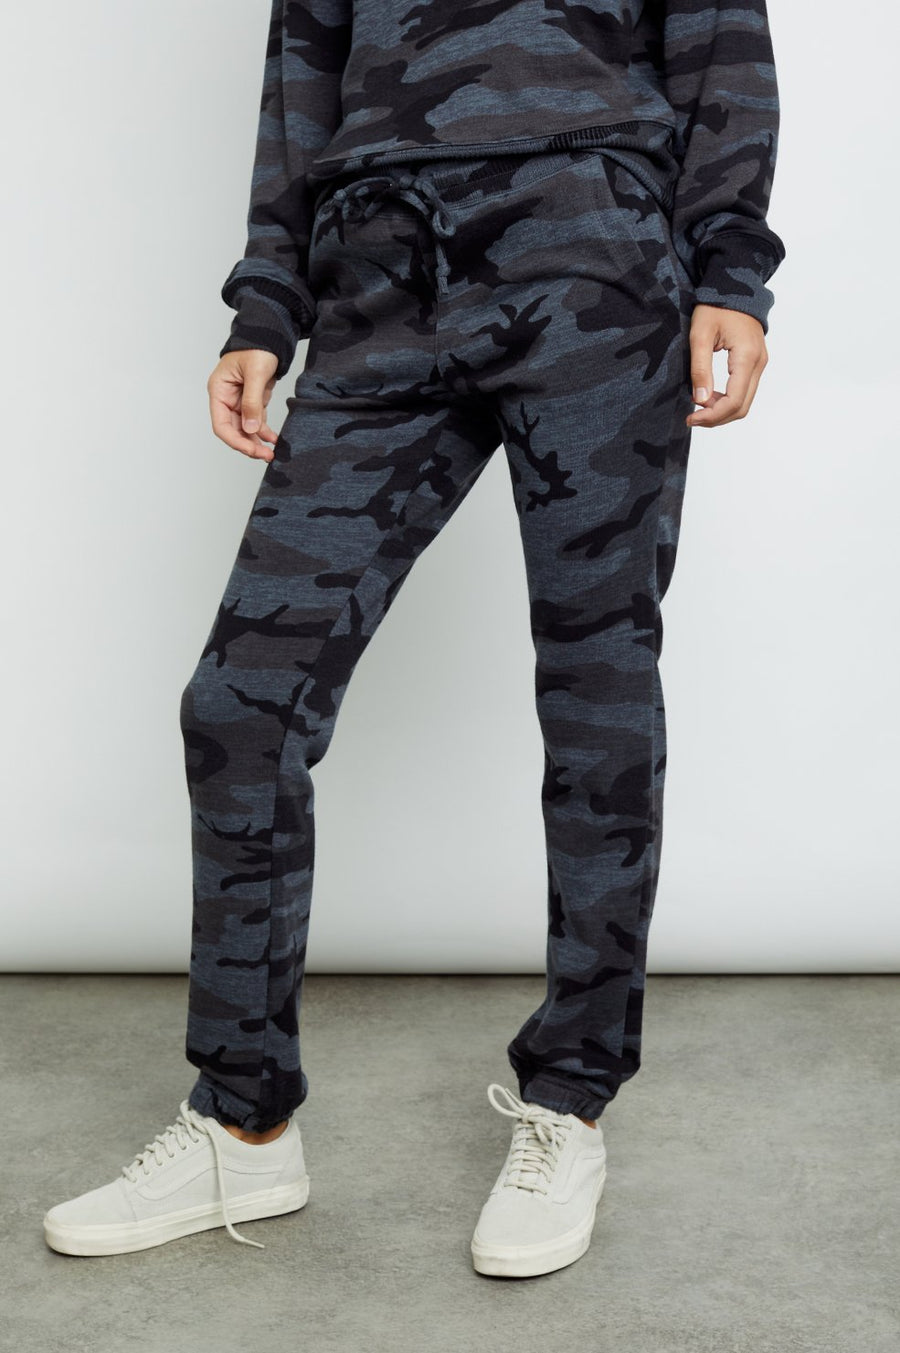 Kingston Sweatpants - Iron Camo